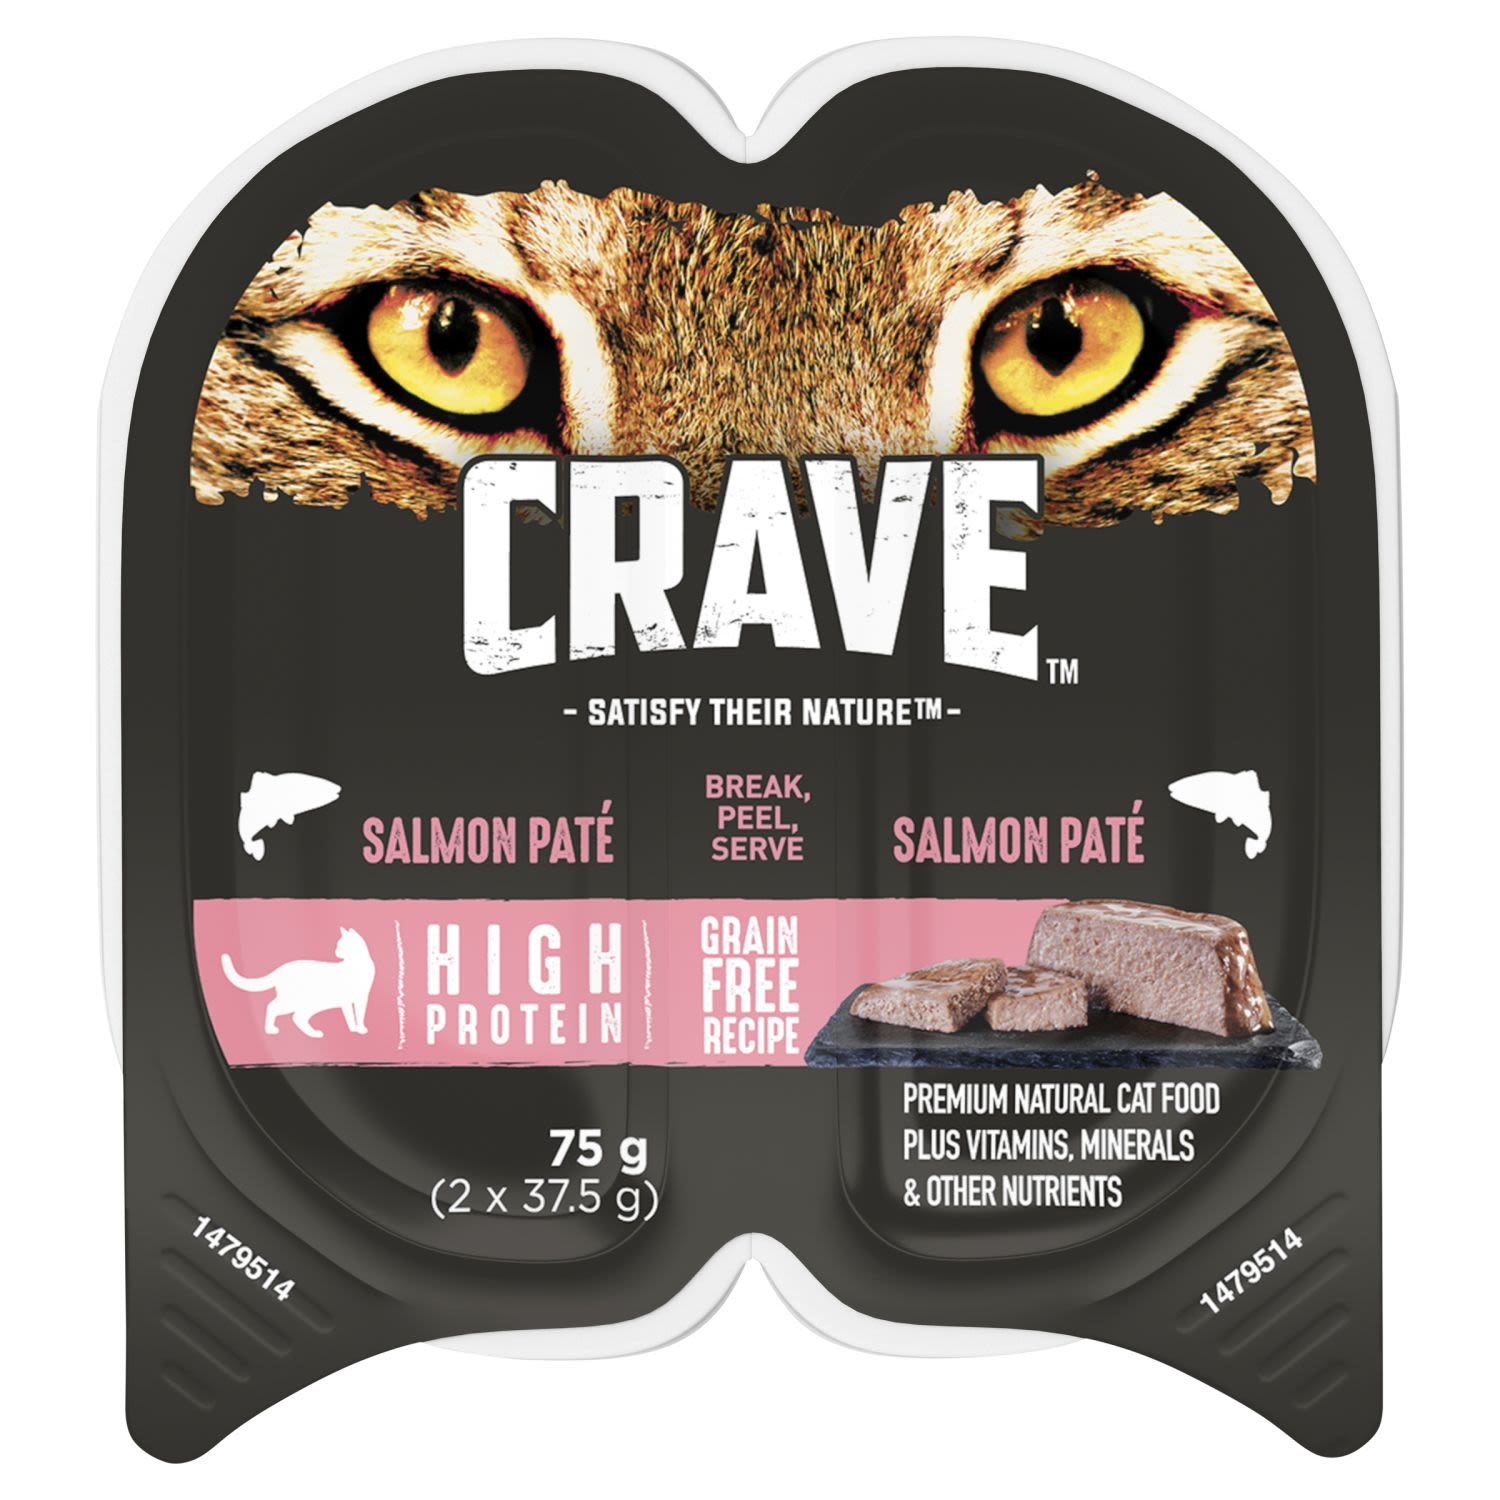 Crave Wet Cat Food Salmon Pate Tray, 2 Each